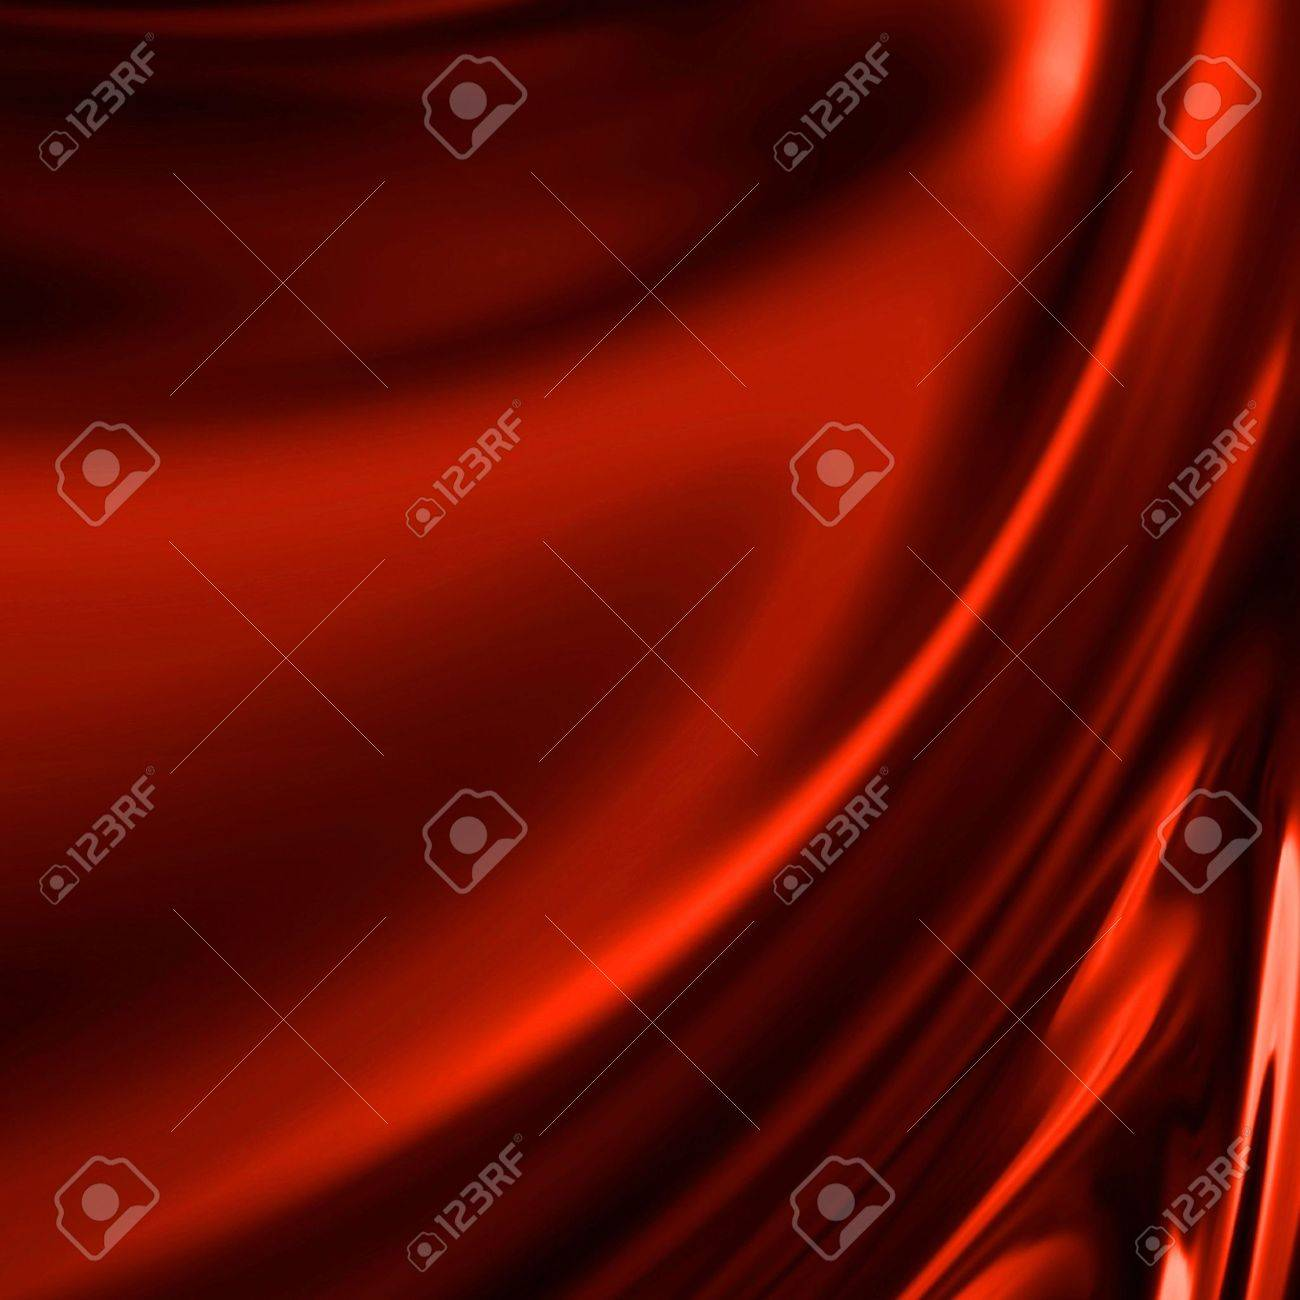 Red drapery with some folds Stock Photo - 3301474